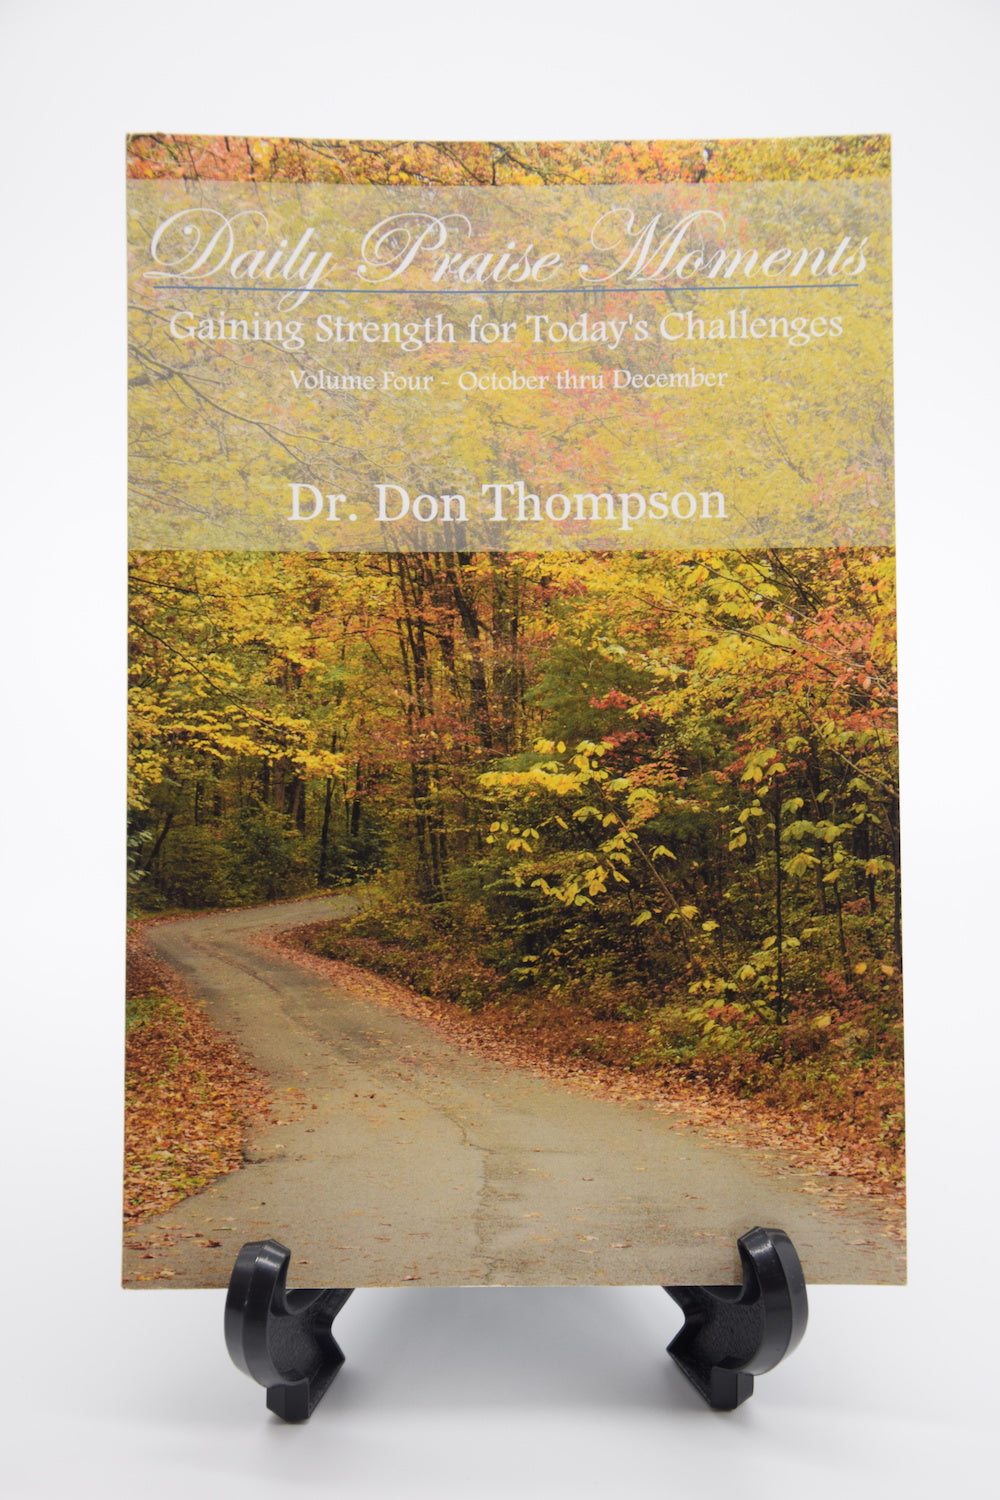 Daily Praise Moments:Gaining Strength of Today's Challenges Volume Four-October-December by Dr. Don Thompson